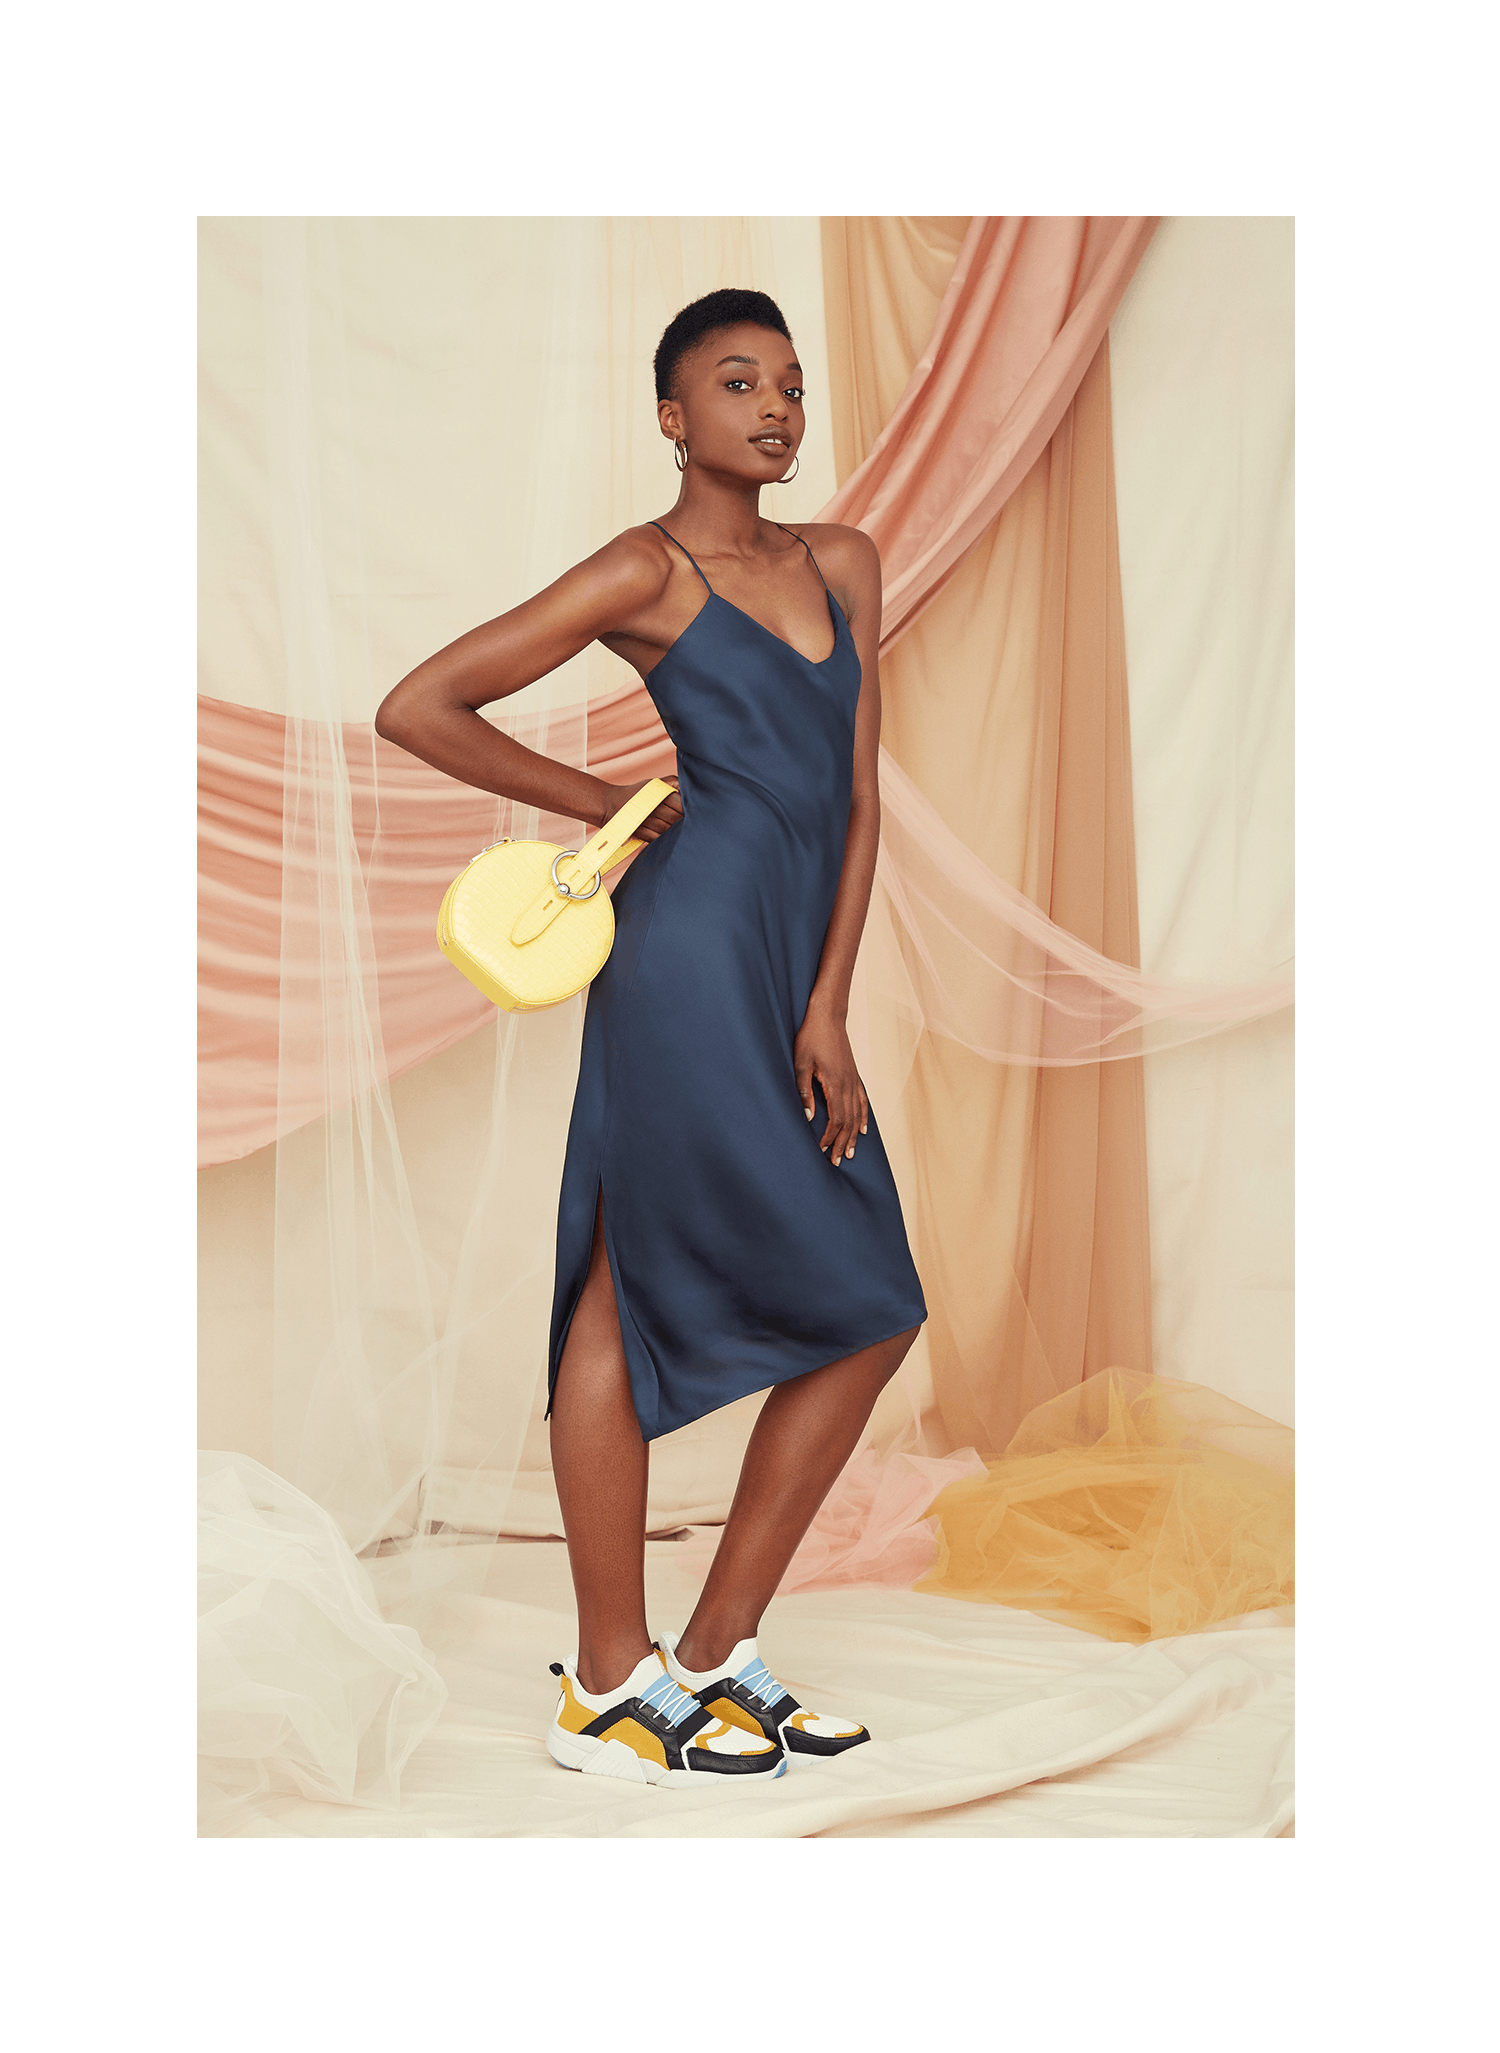 f198676719 Master Summer s Best Trends With These Key Looks From Amazon Prime